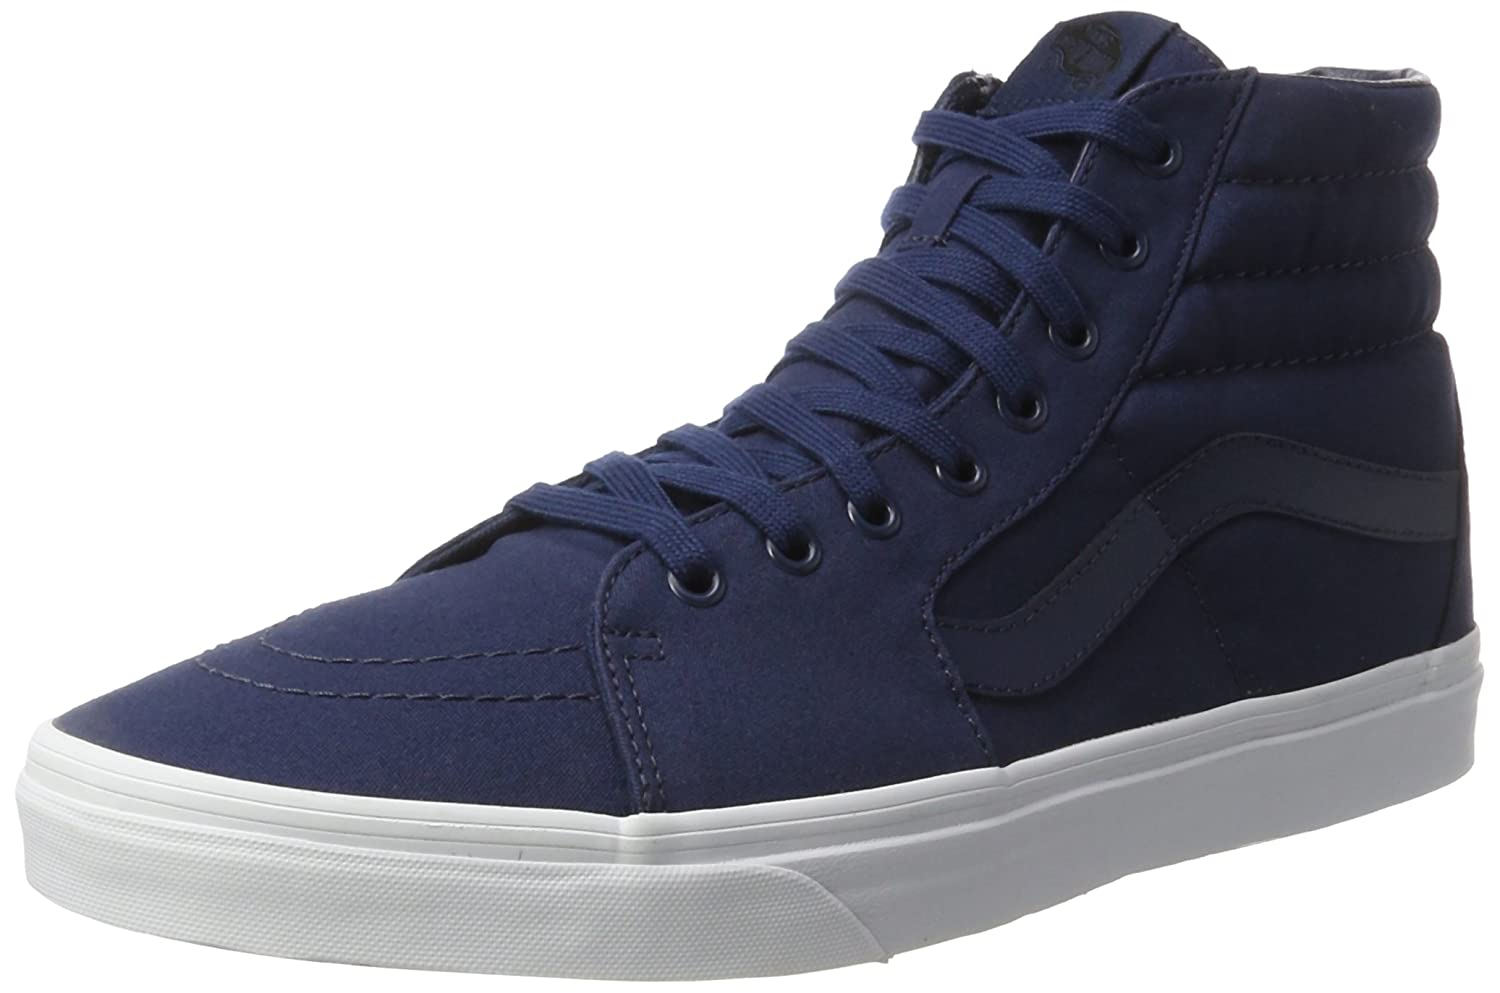 Vans Sk8-Hi Unisex Casual High-Top Skate Shoes, Comfortable and Durable in Signature Waffle Rubber Sole B01I46HL8A 9.5 M US Women / 8 M US Men|Dress Blues/True White